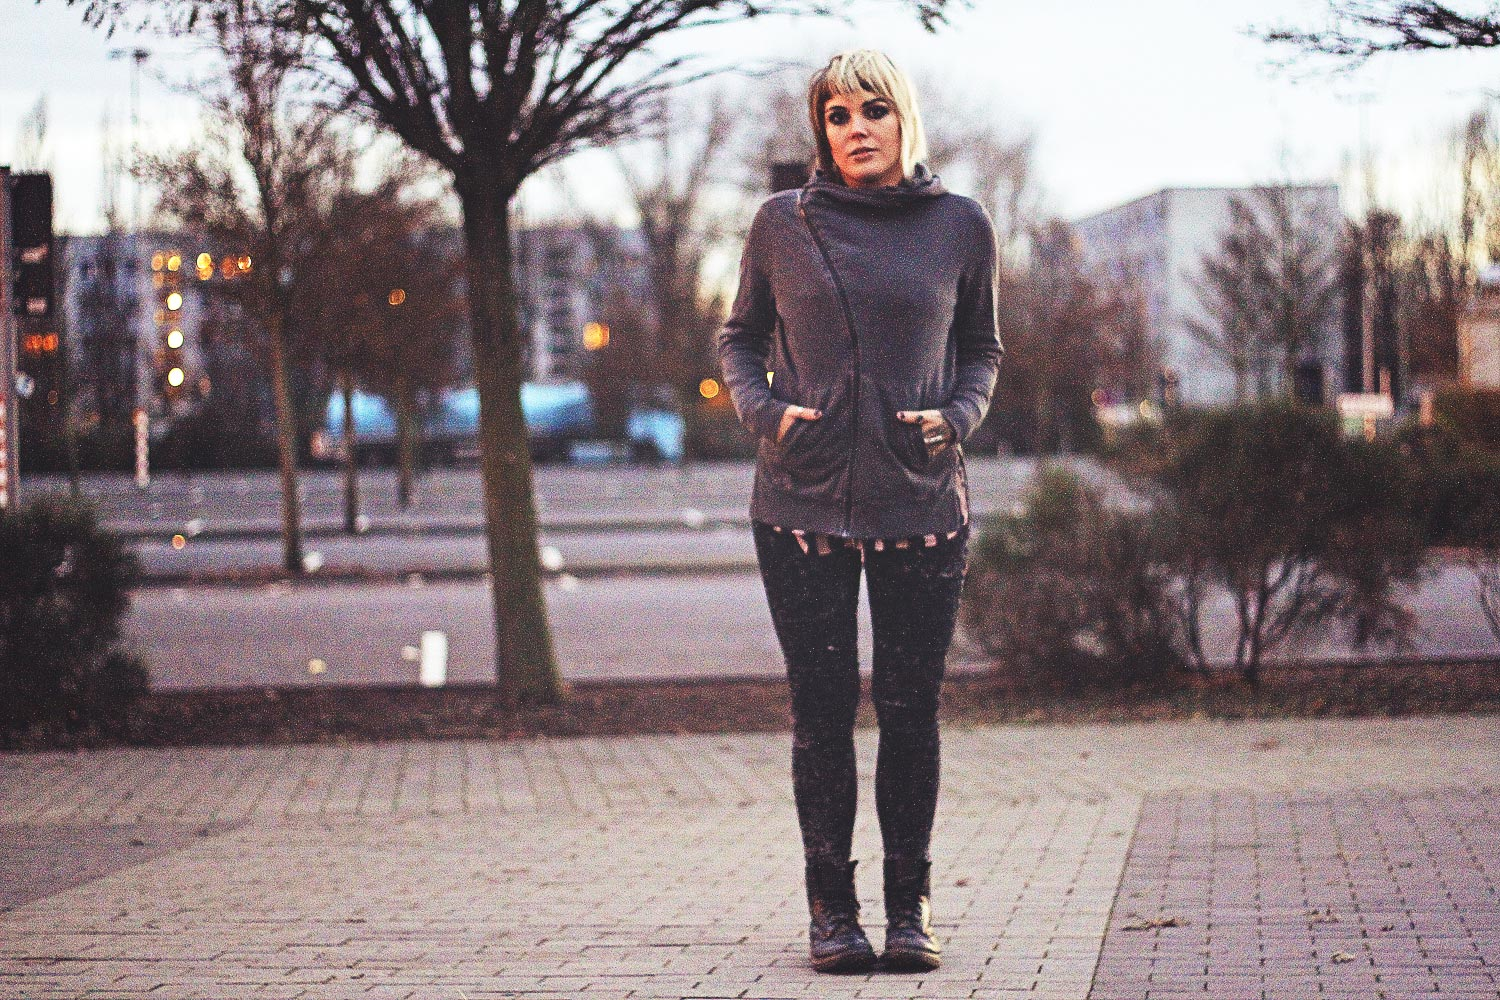 alternative, alternative fashion, alternative girl, alternative mode, altgirl, berlin, berlin fashion, berlin fashion blogger, berlin mode, berlin streetstyle, blogger, fashion blogger, girls with piercings, girls with tattoos, grunge, grunge fashion, grunge mode, mode, Punk, punk fashion, punk mode, punkgirl, punkmädchen, scenehair, snakebites, split hair, splithair, tattoomädchen, tattoo model, h&m, streifen, divided, grey, used, used look, rpped, acid wash, jeans, skinny, skinny jeans, boots, new yorker, dämmerung, parkplatz, bokeh, portrait doc martens, docs, wasserfallkragen, kapuze